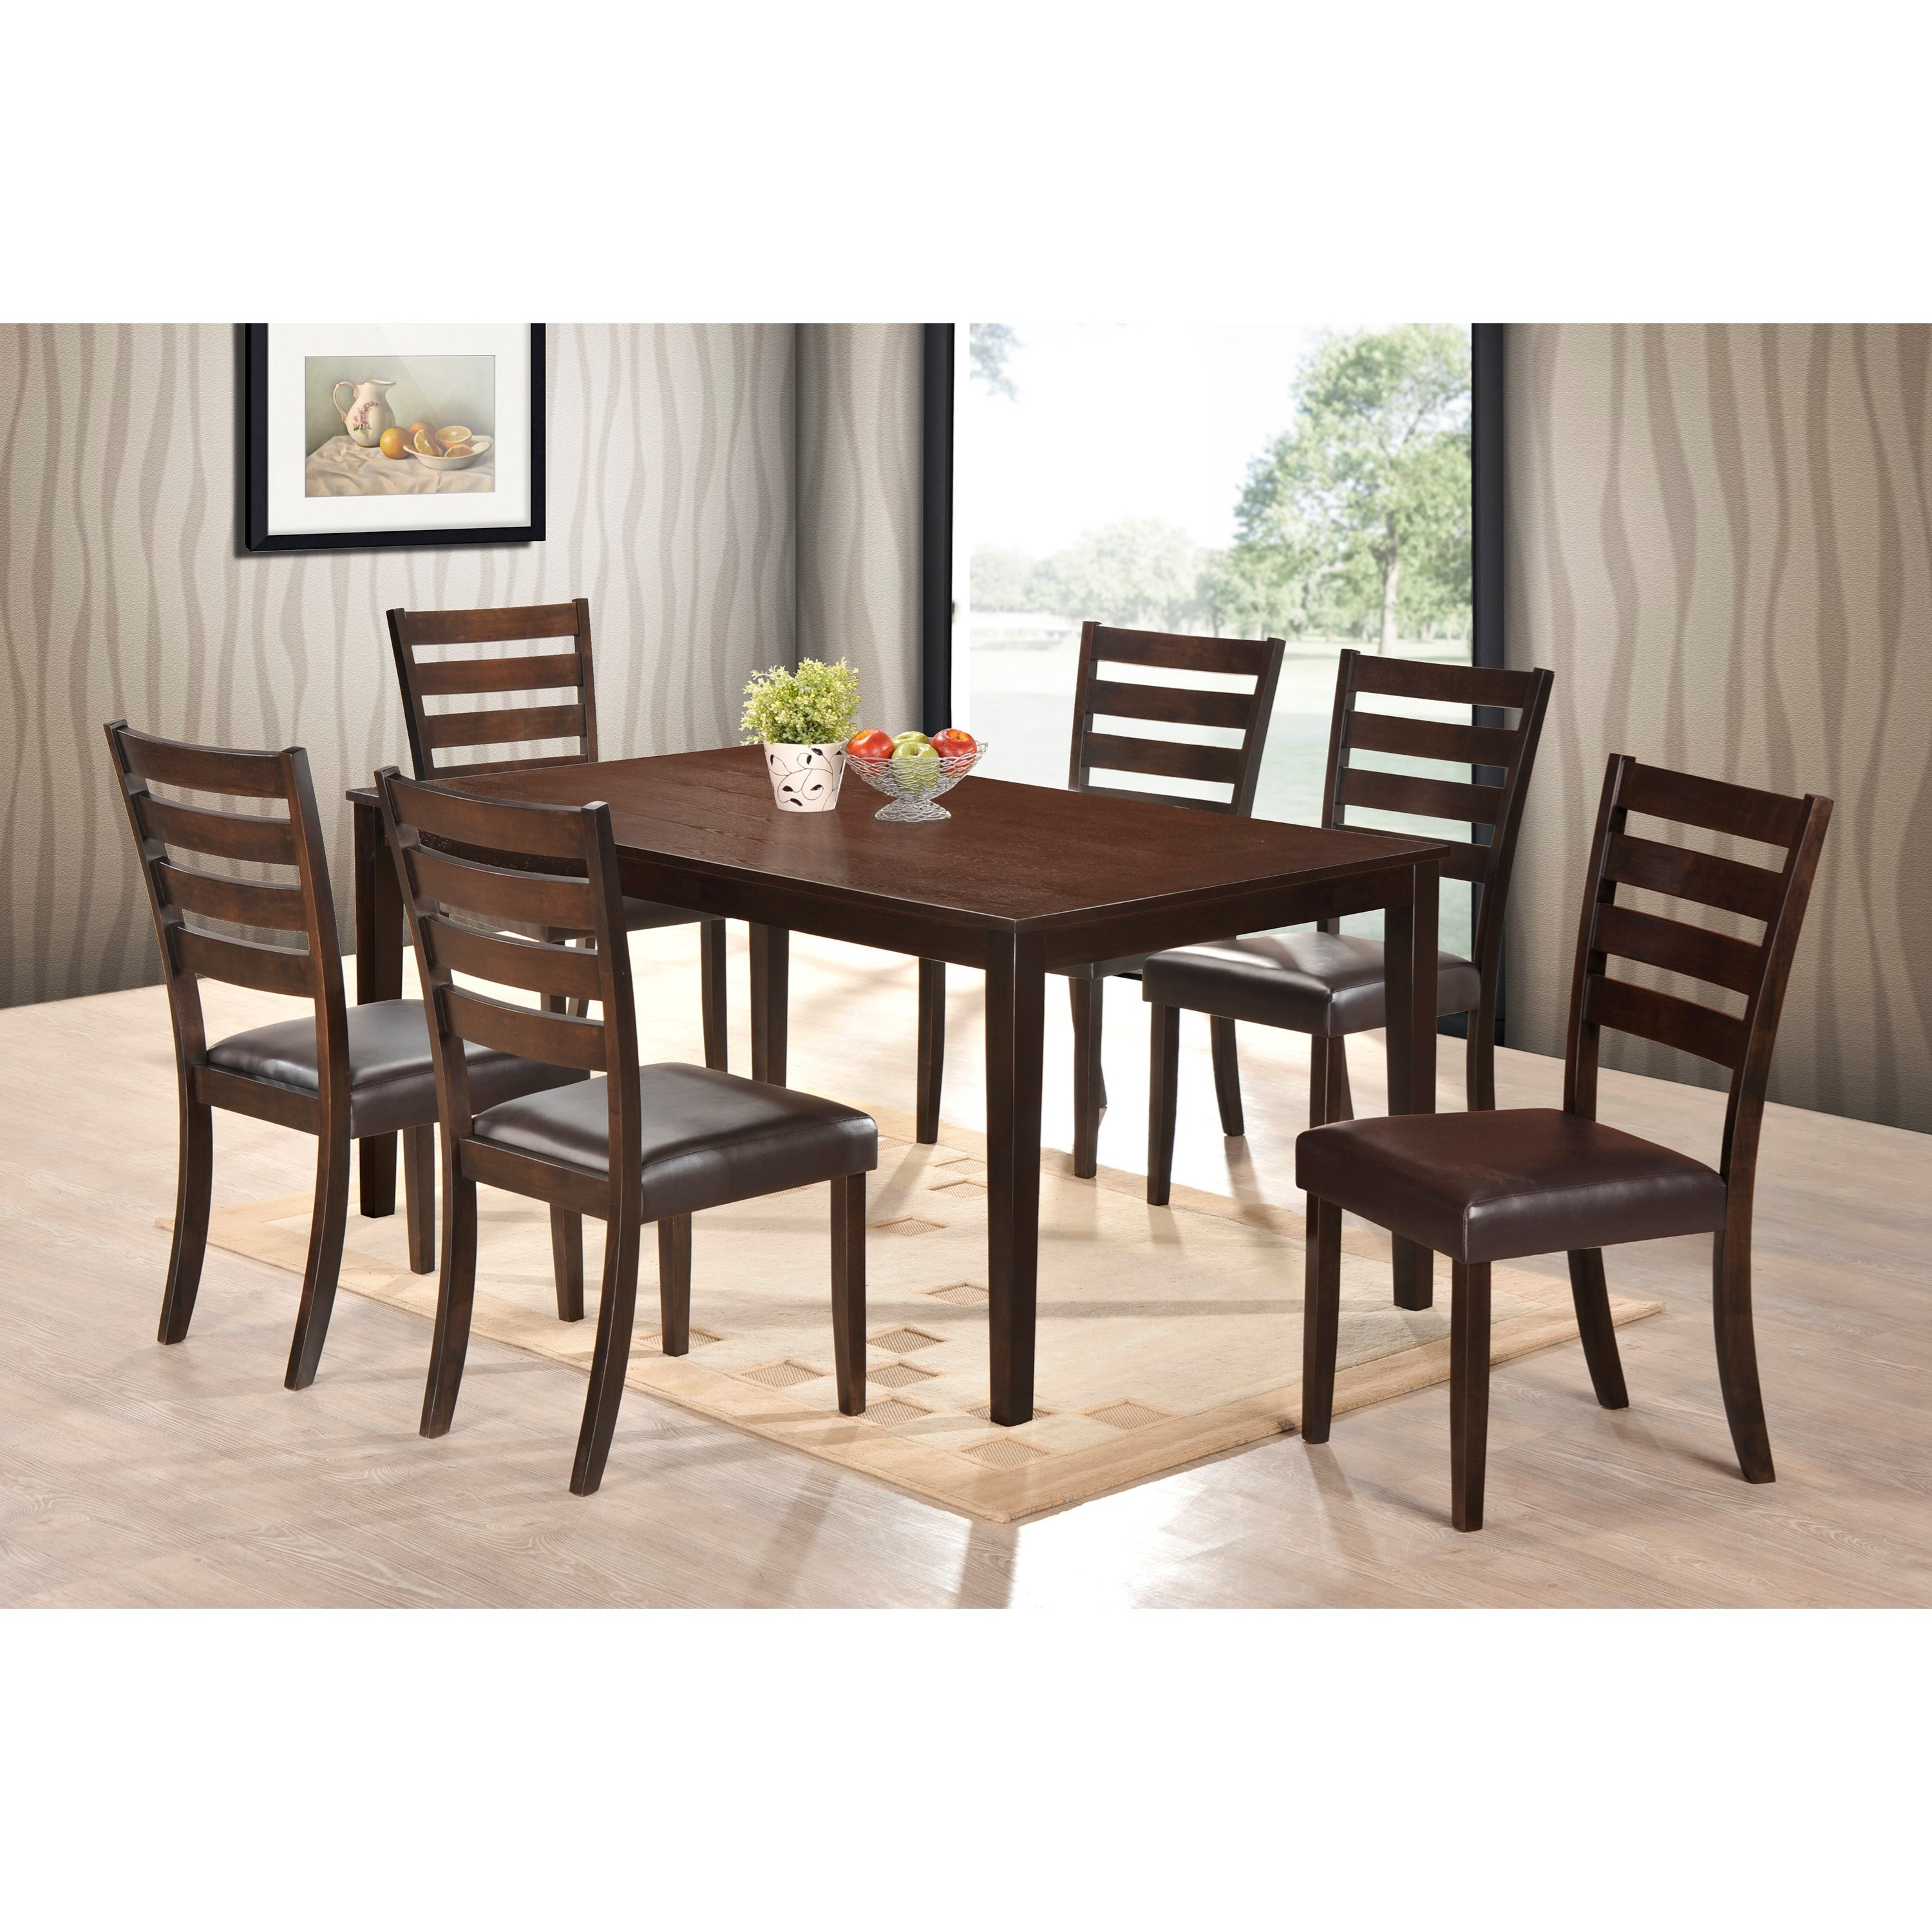 Crown Mark Aubery Dining 7 Piece Table and Chair Set - Item Number: 2340T-3864+6x2340S